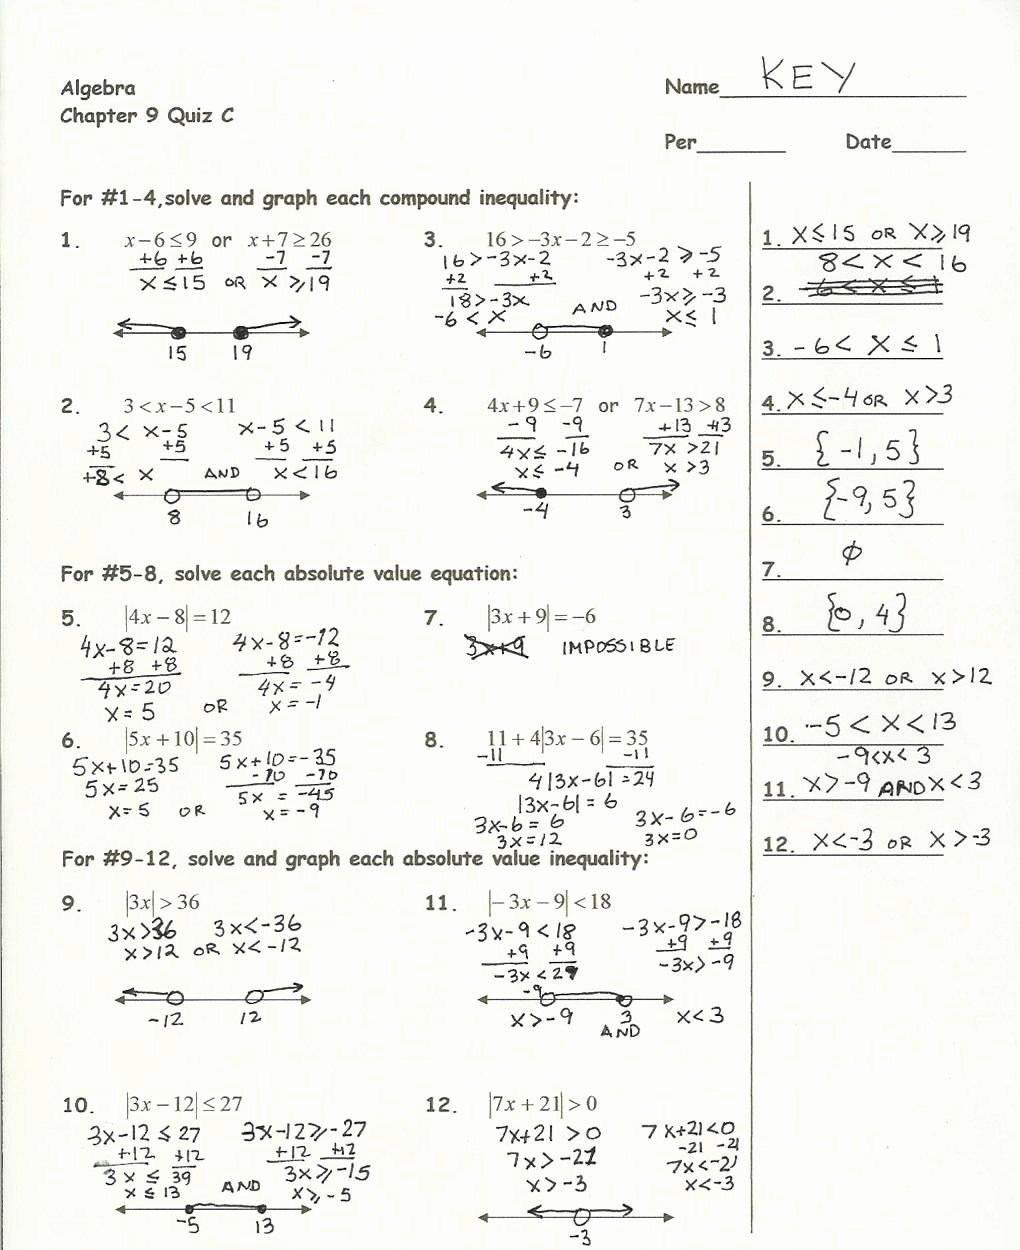 Factoring Quadratic Expressions Worksheet Answers Lovely Graphing Parabolas Worksheet Algebra 1